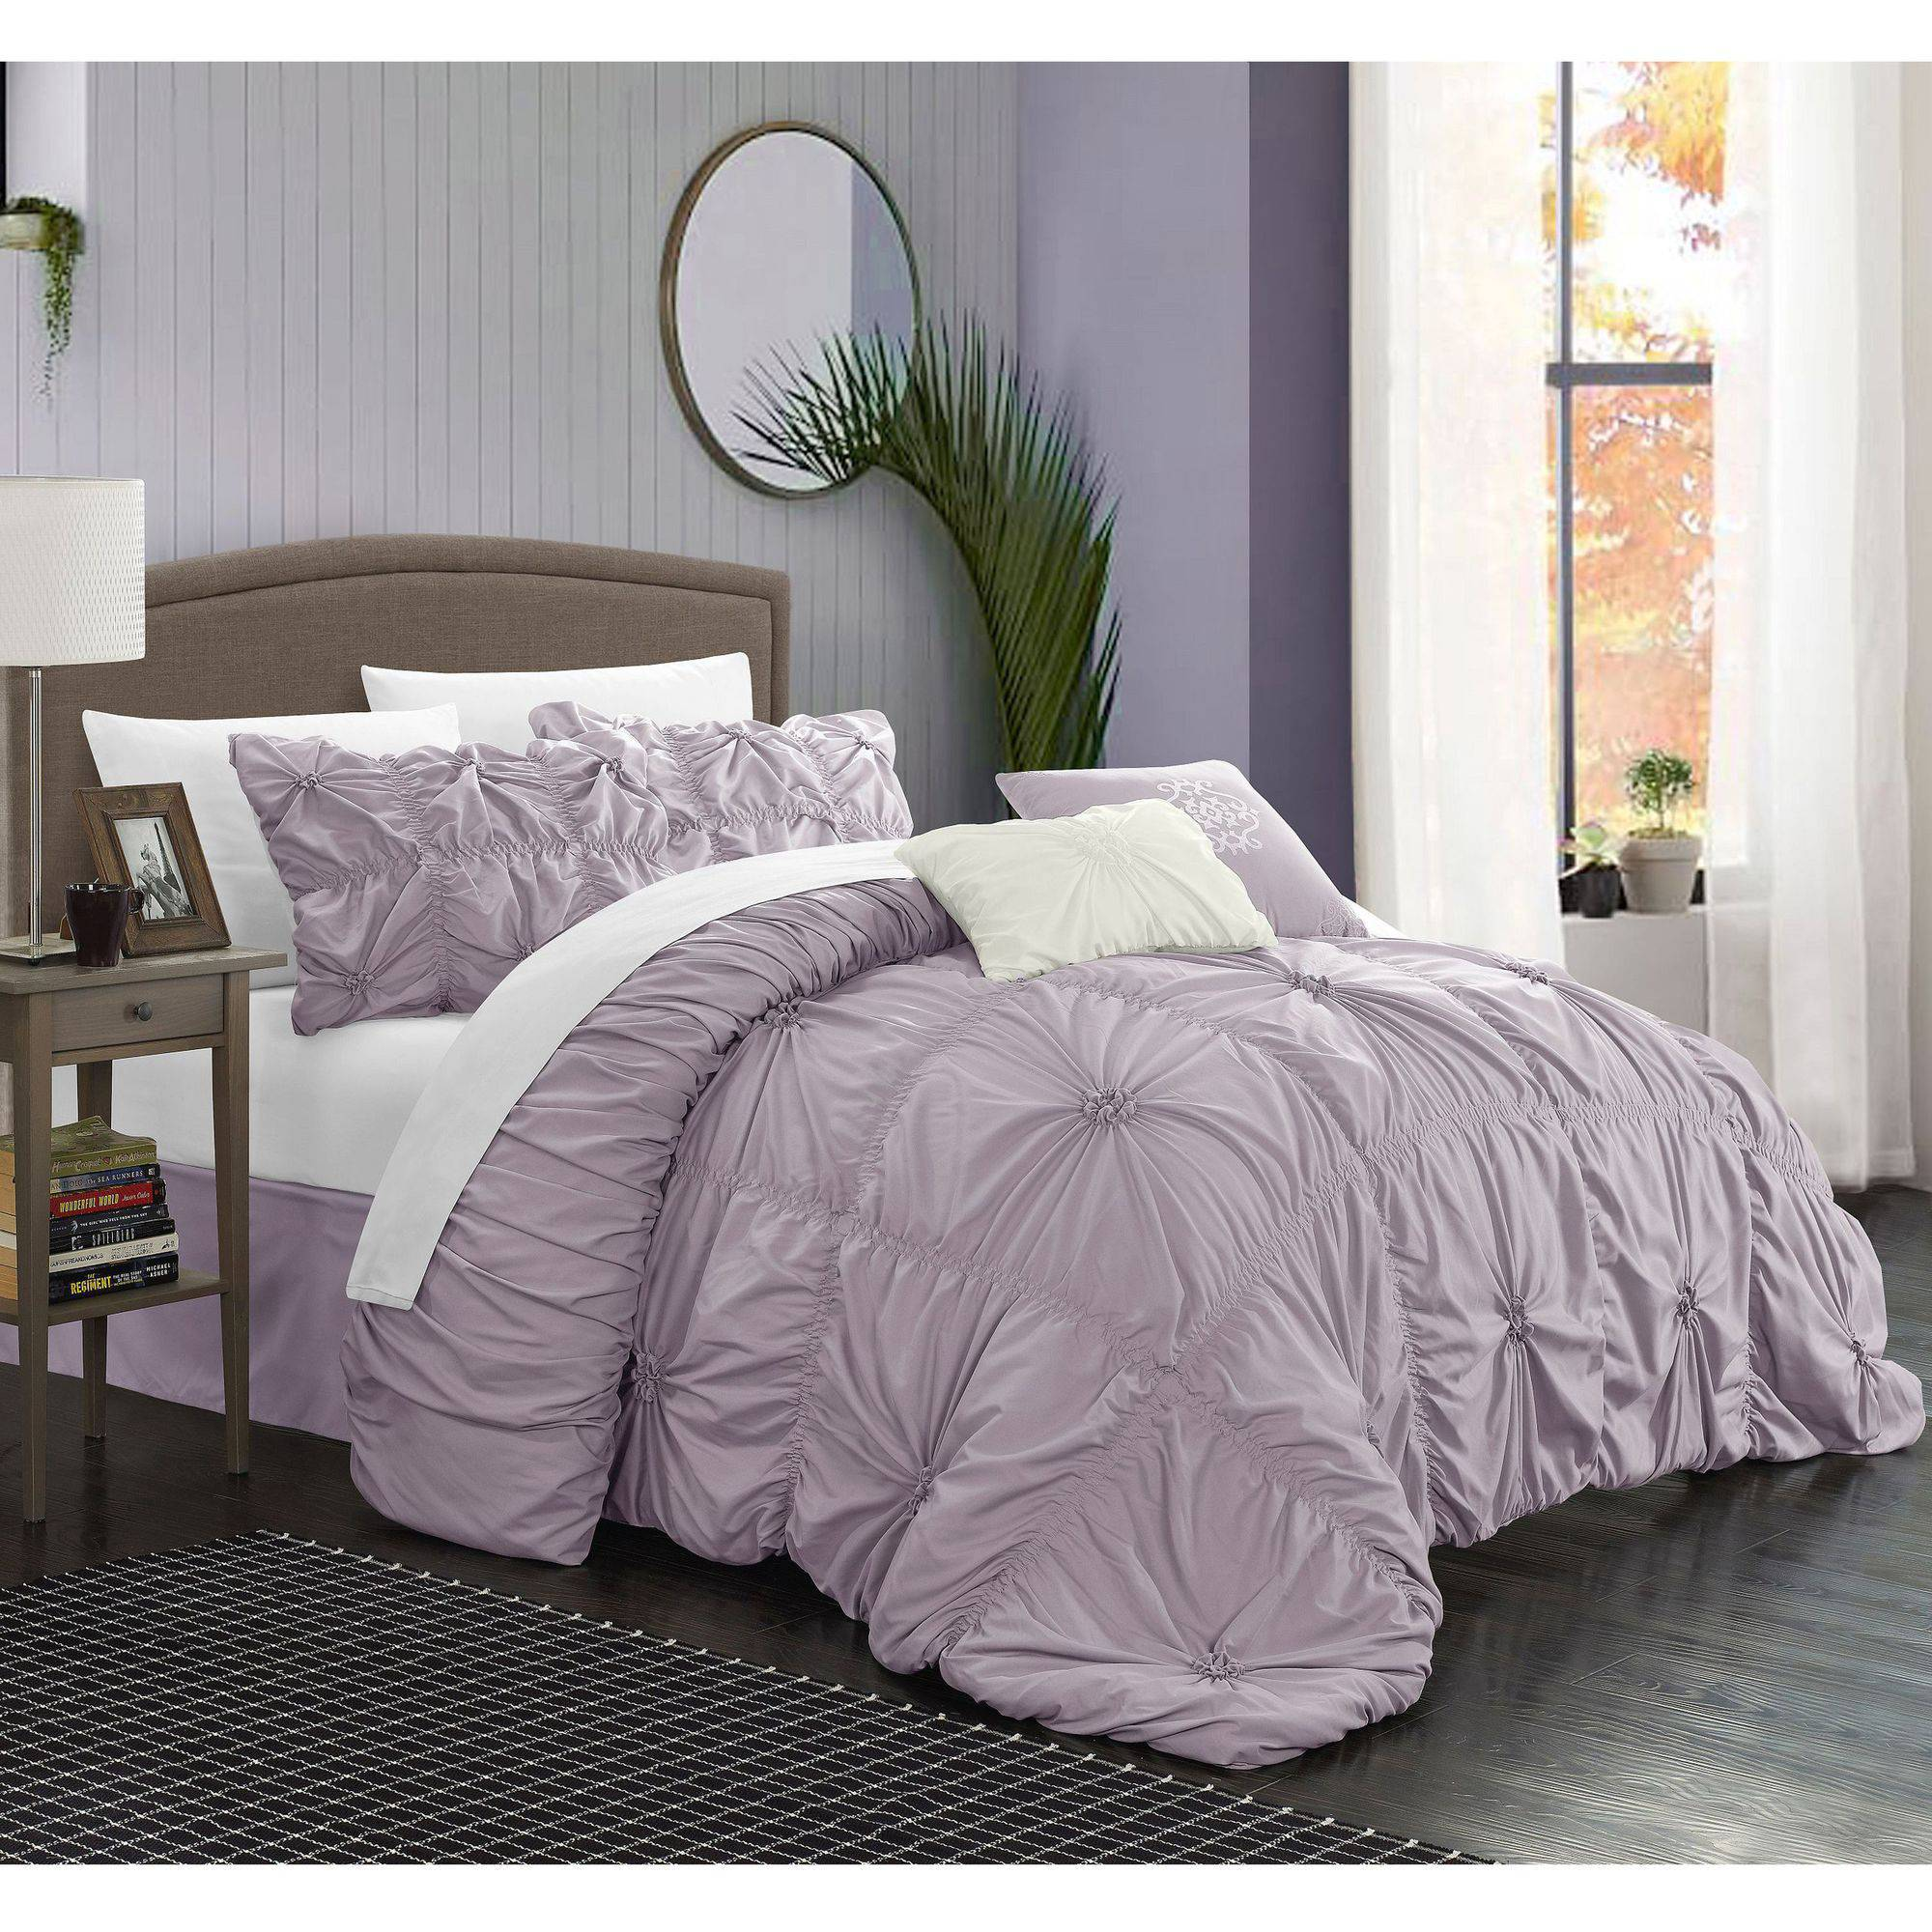 Chic Home 10-Piece Hyatt Floral Pinch Pleat Ruffled Comforter Set